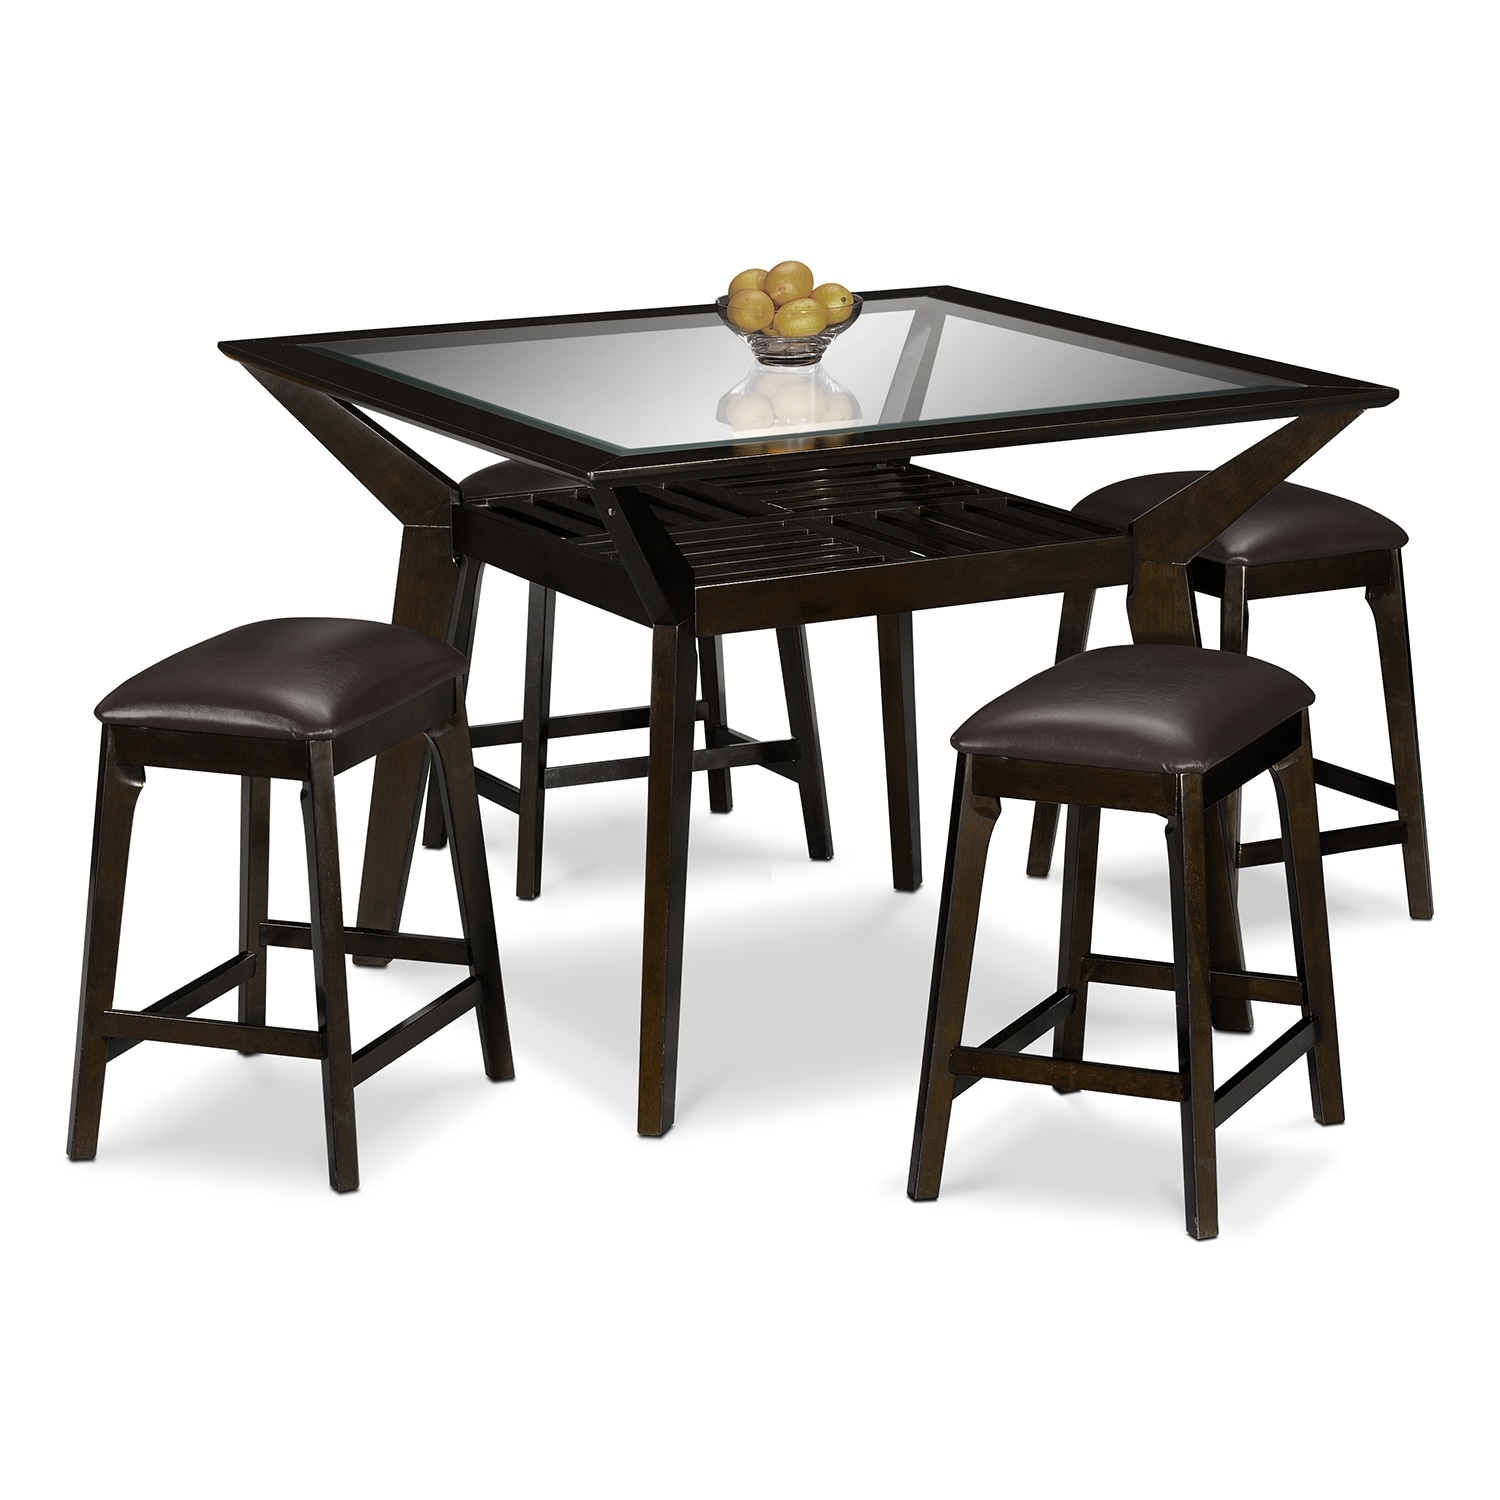 Mystic Counter-Height Table and 4 Backless Stools - Merlot and Chocolate